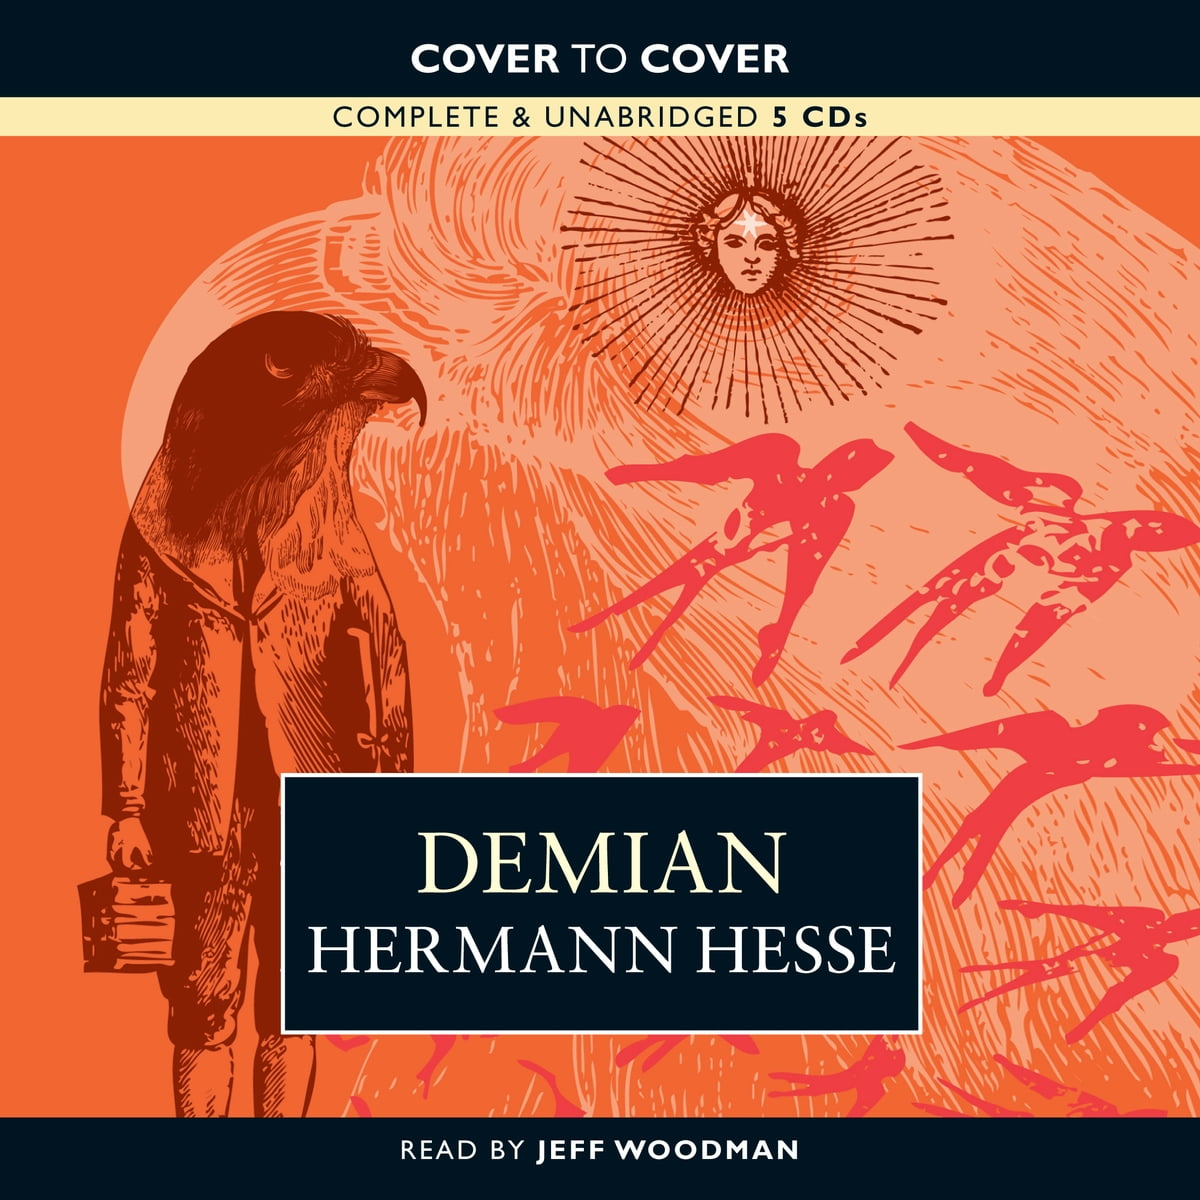 demian hermann hesse ebook english